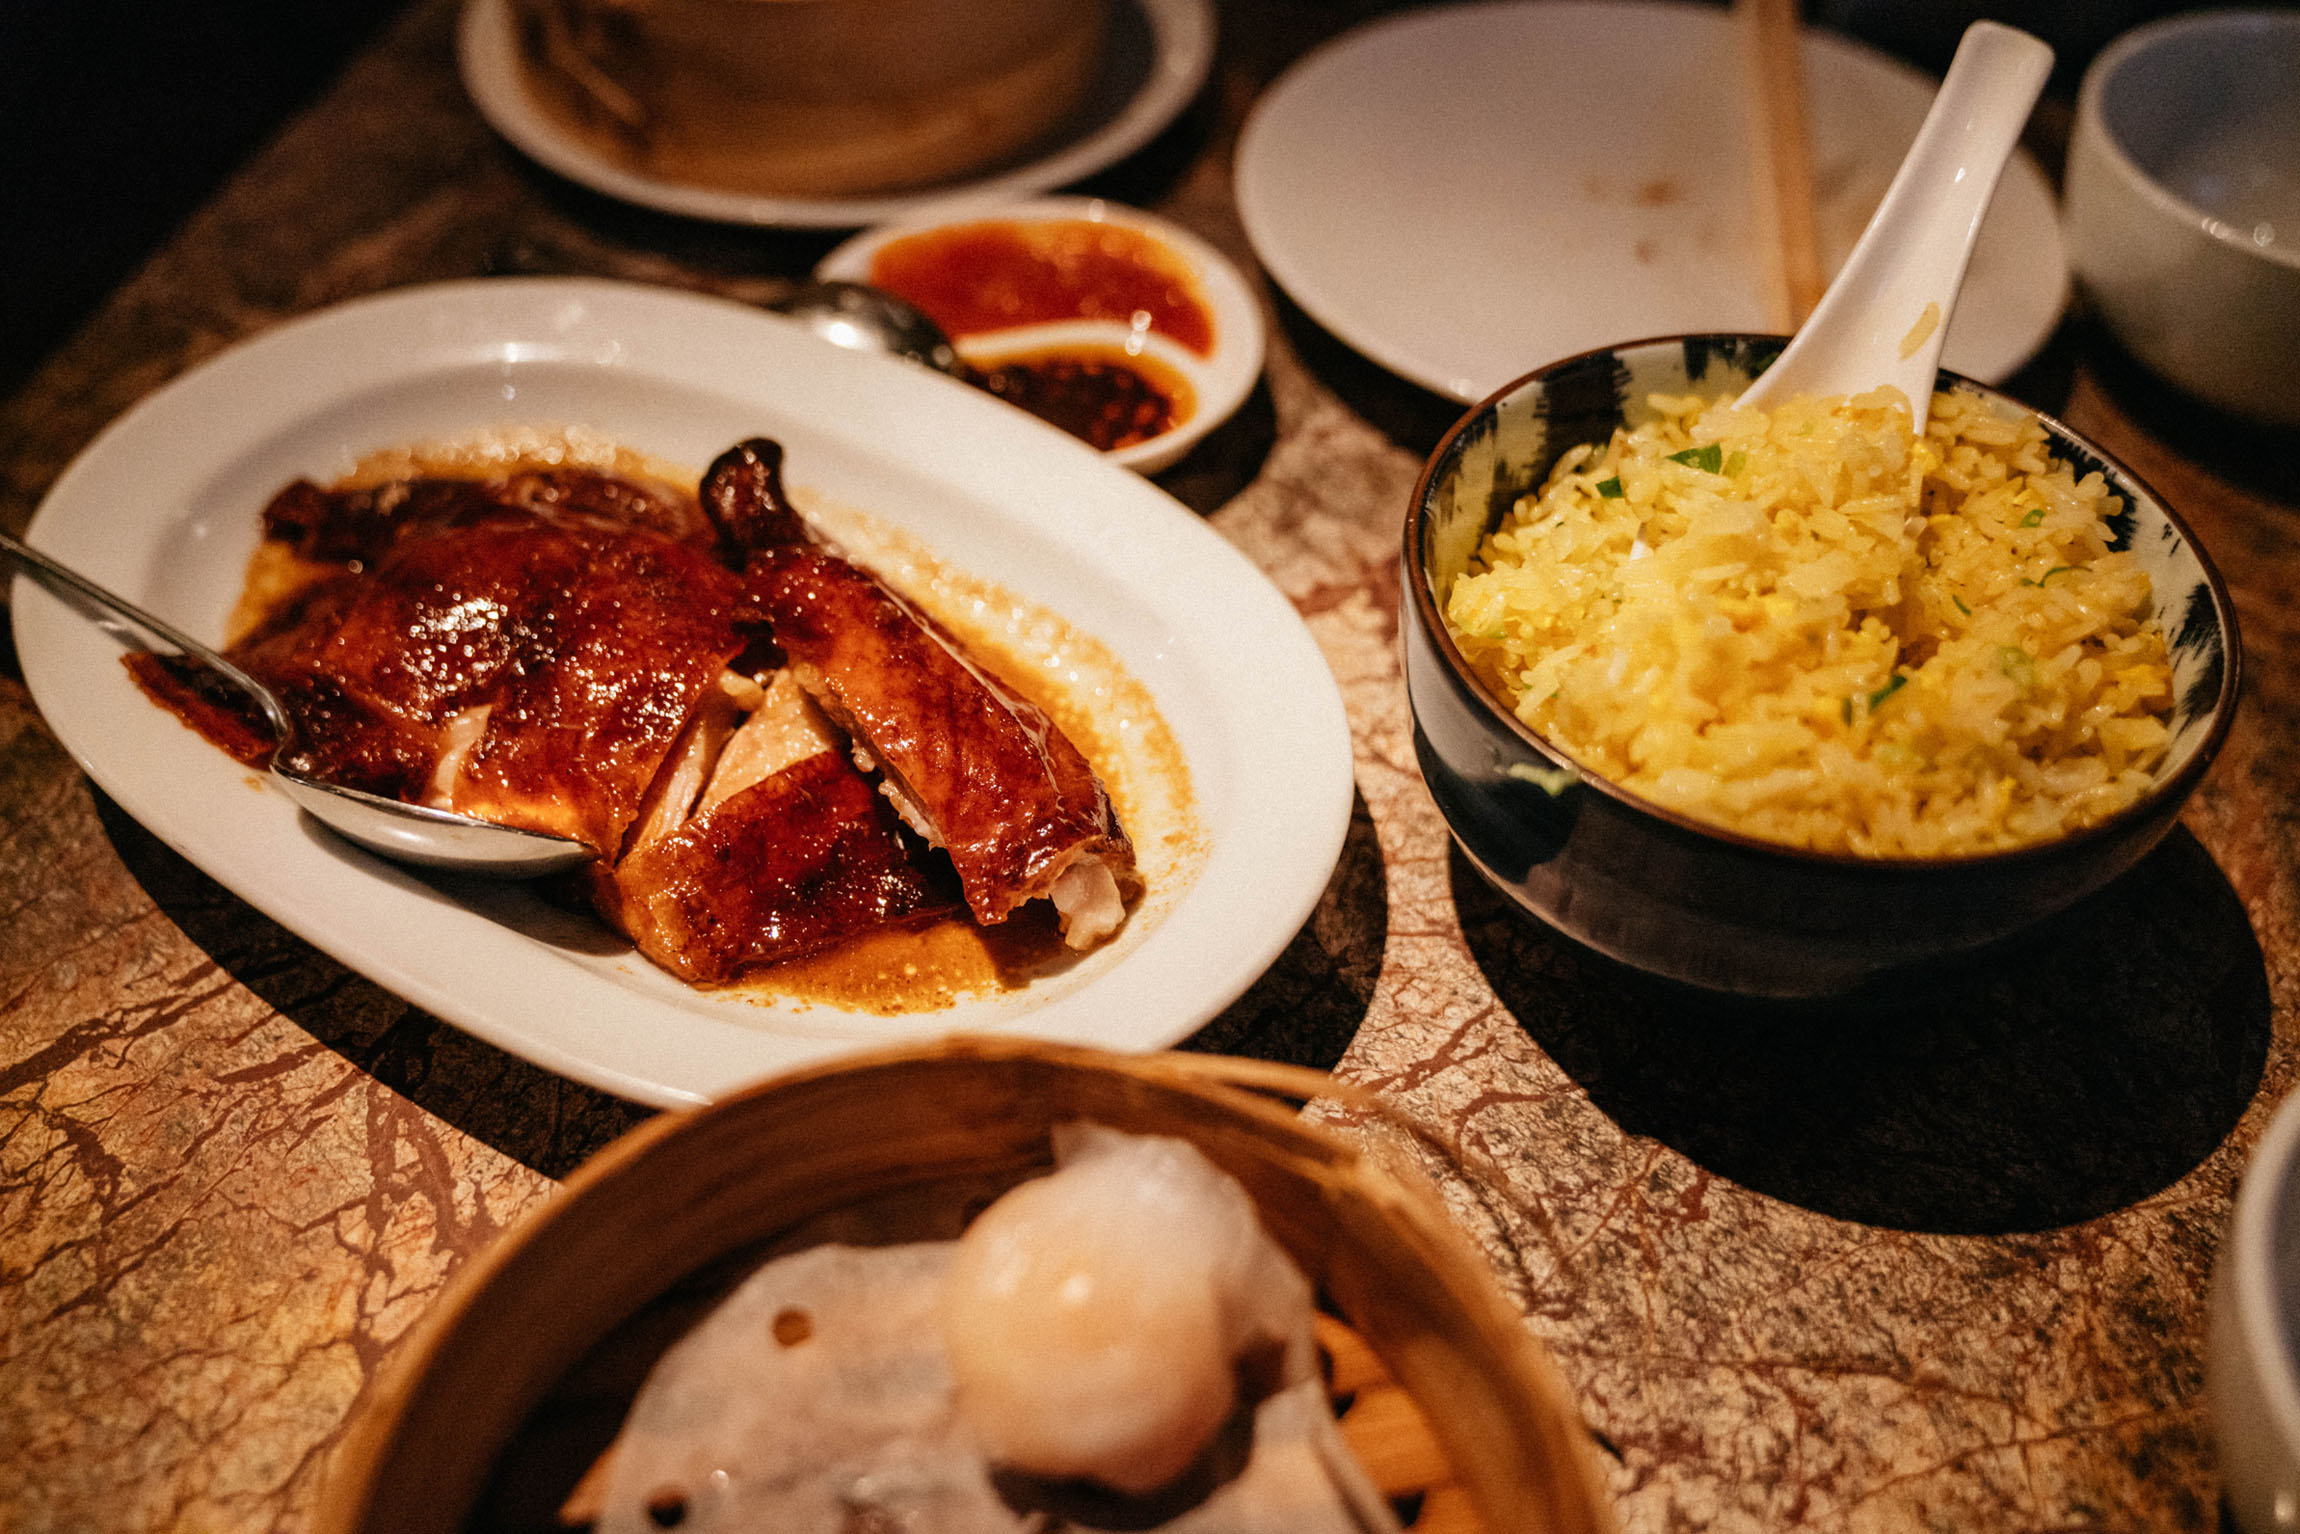 Quarter duck and egg fried rice